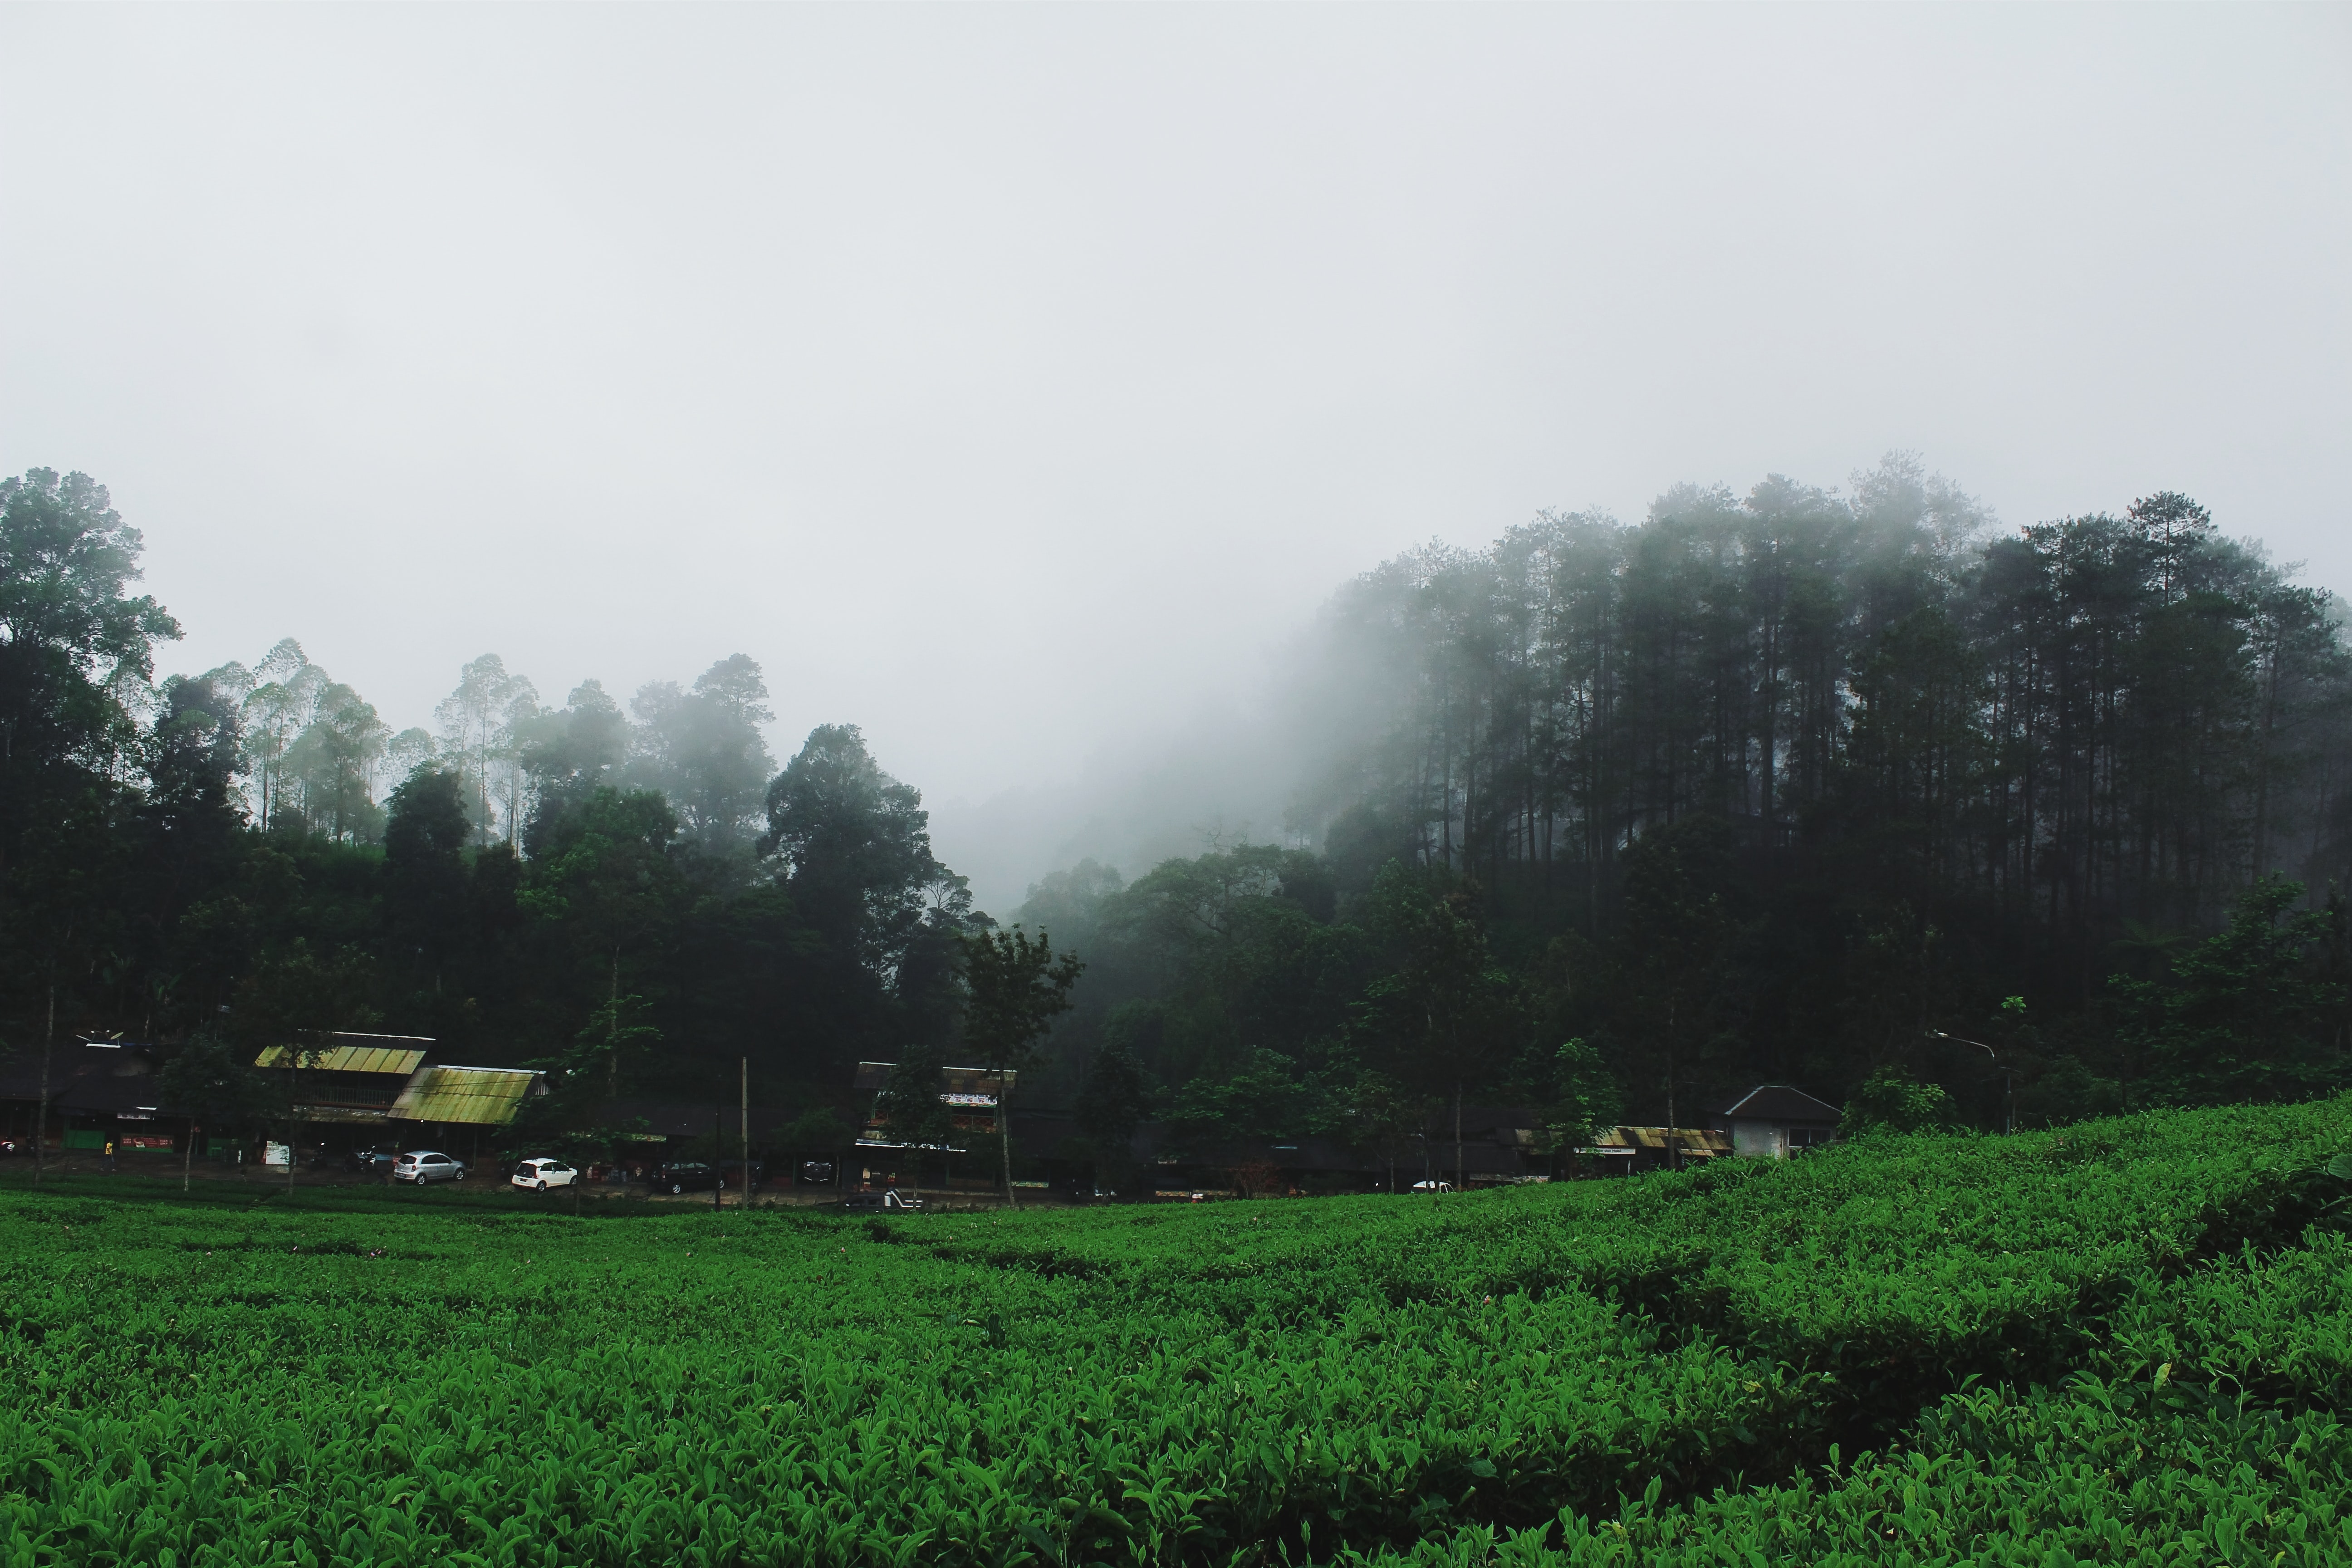 A foggy field surrounded by trees in Lembang